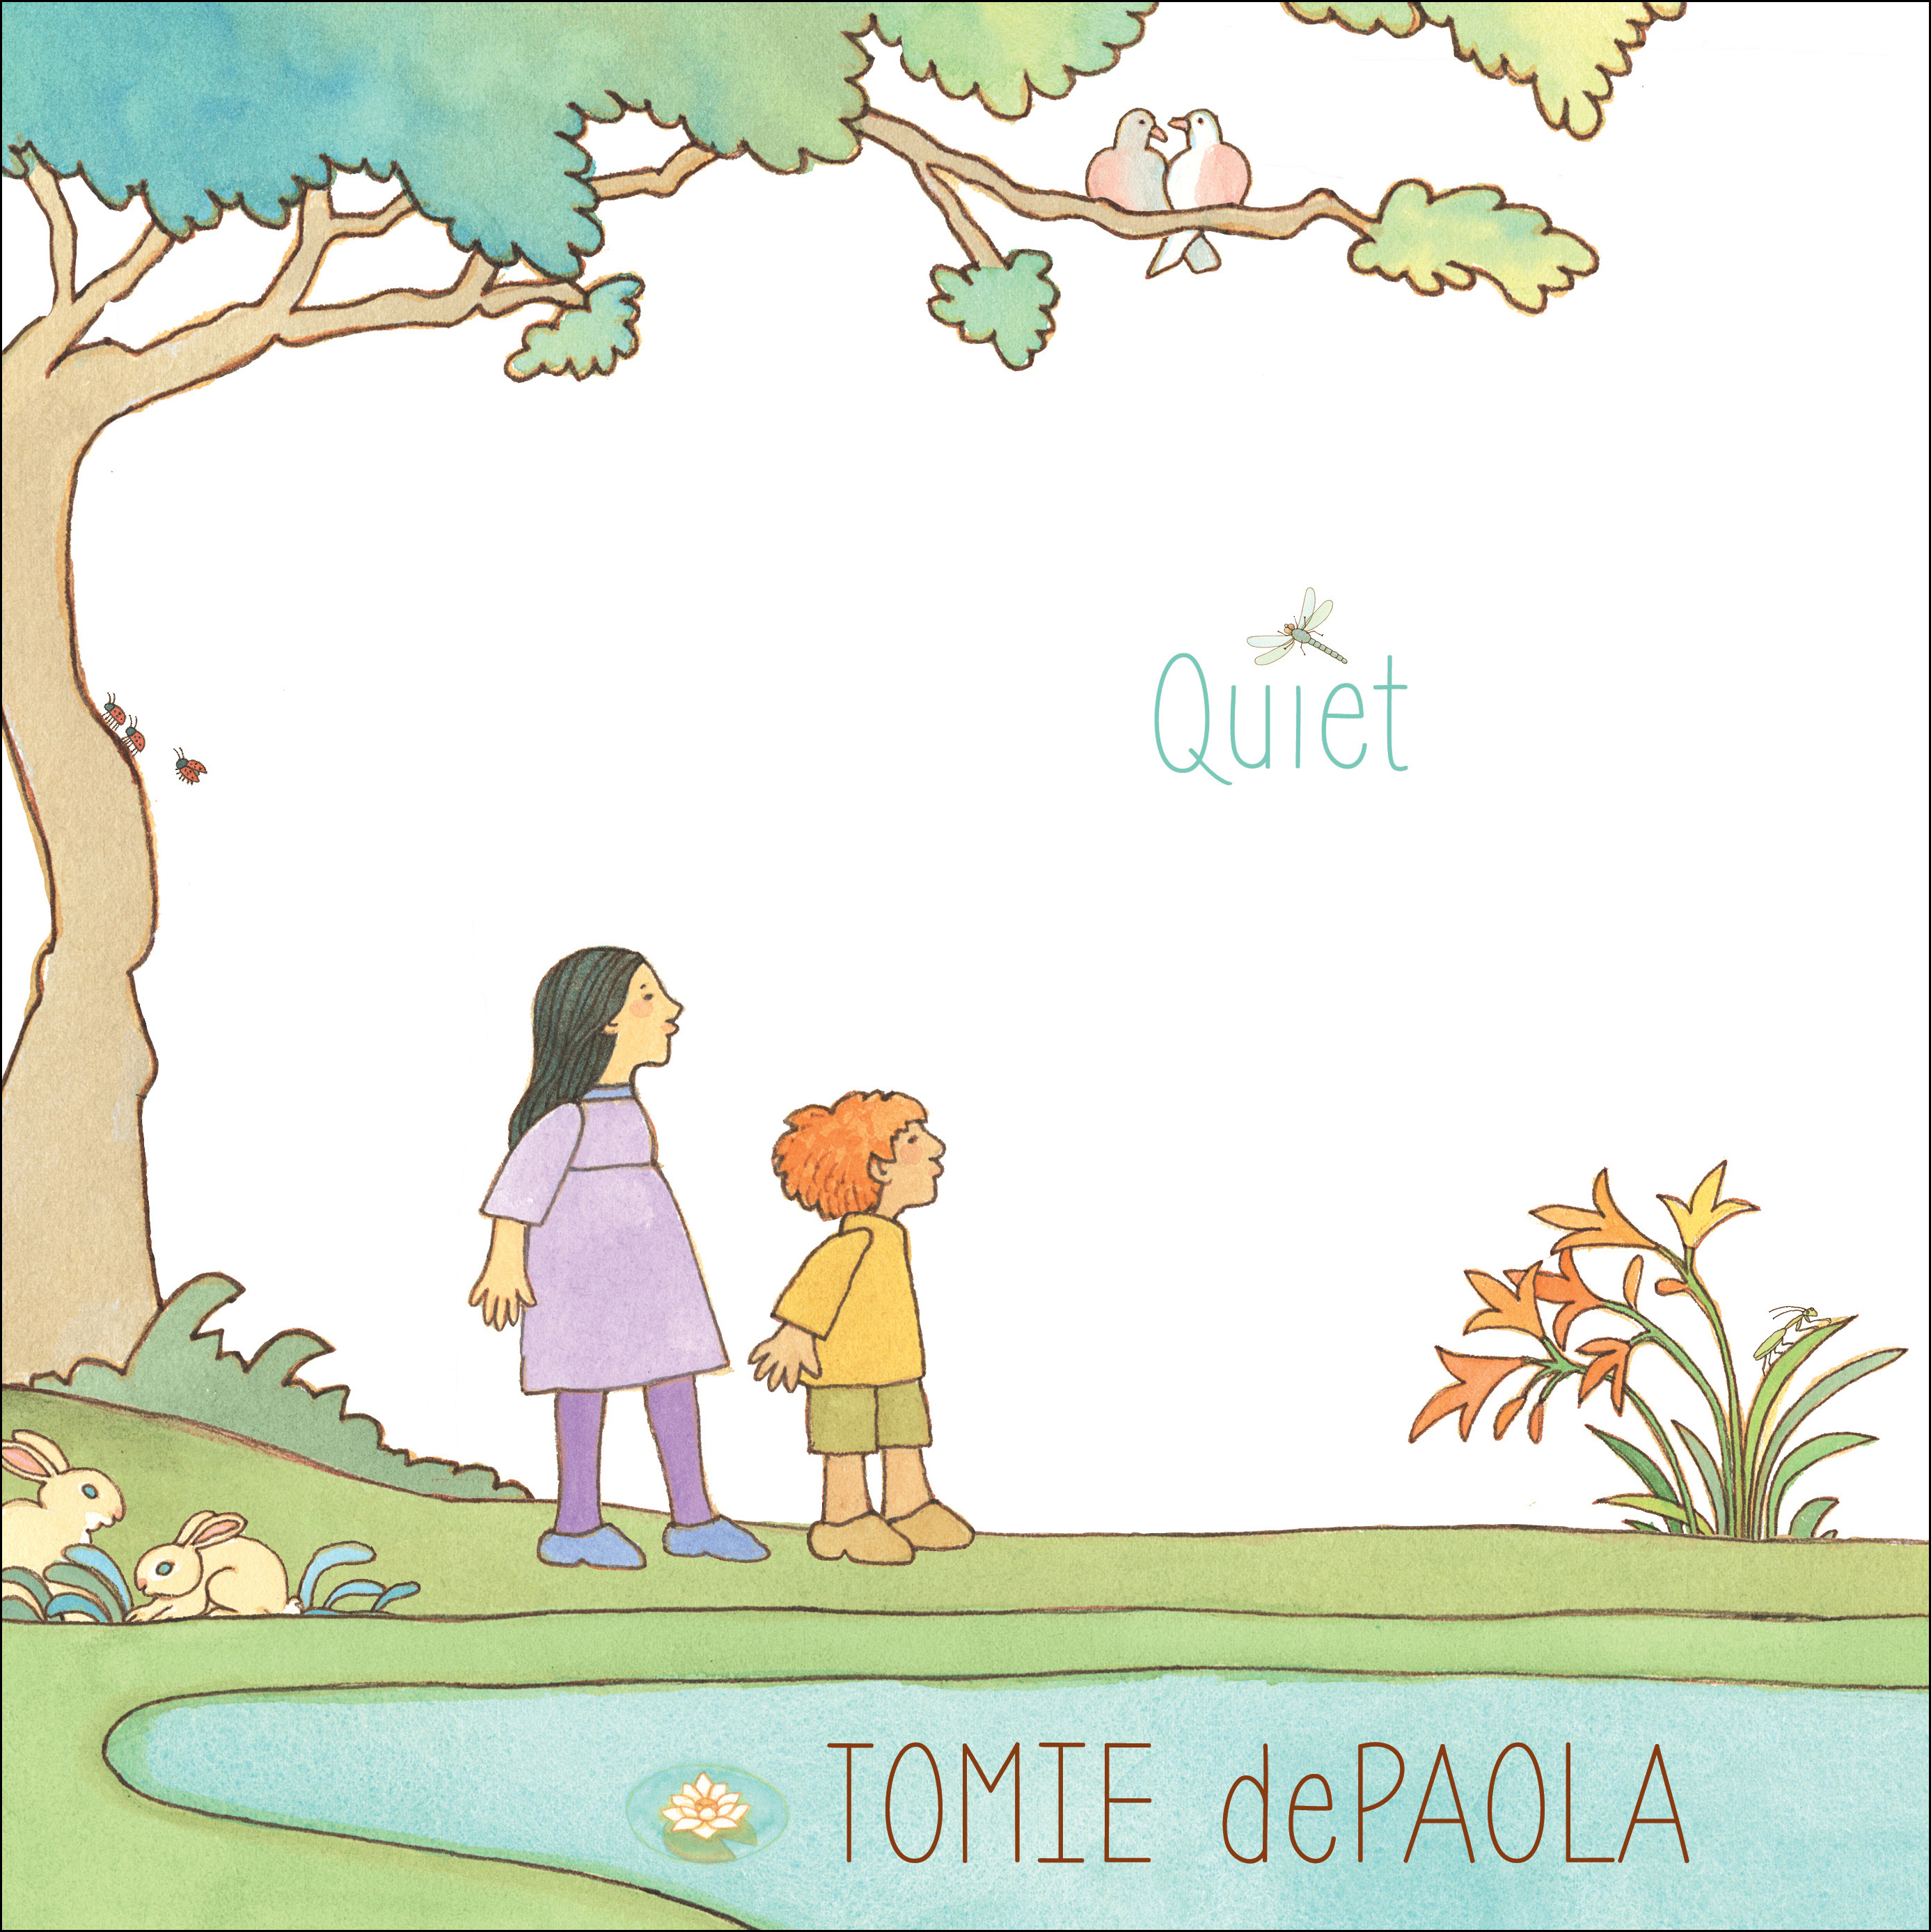 Tomie dePaola's books help us find the sacred in stories ...